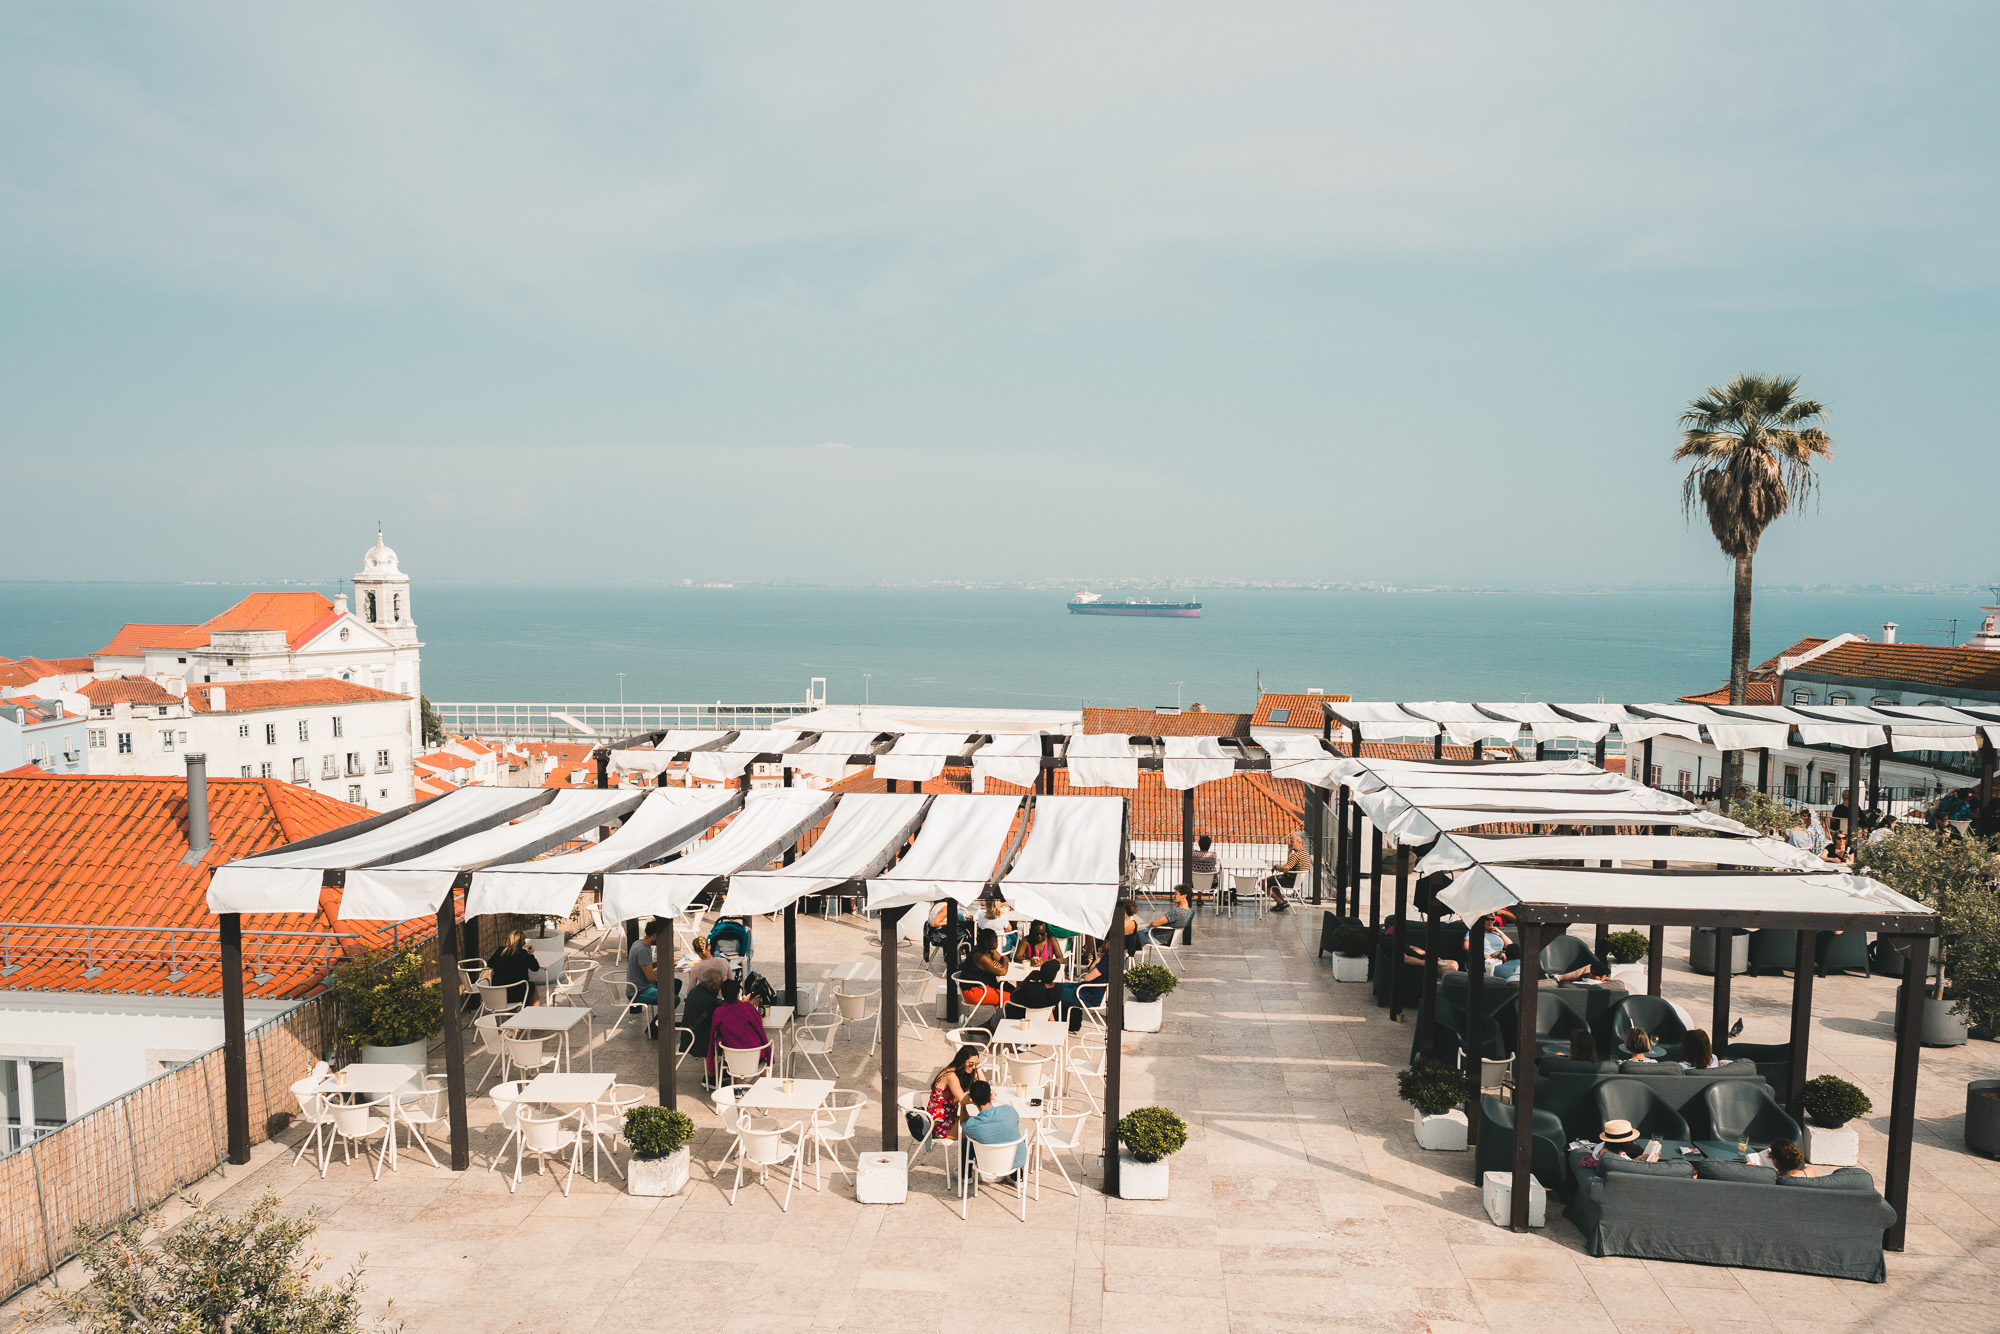 Lookout point in Alfama for the rooftops of Lisbon and sunset drinks in Portugal | Lisbon Travel Guide via Find Us Lost